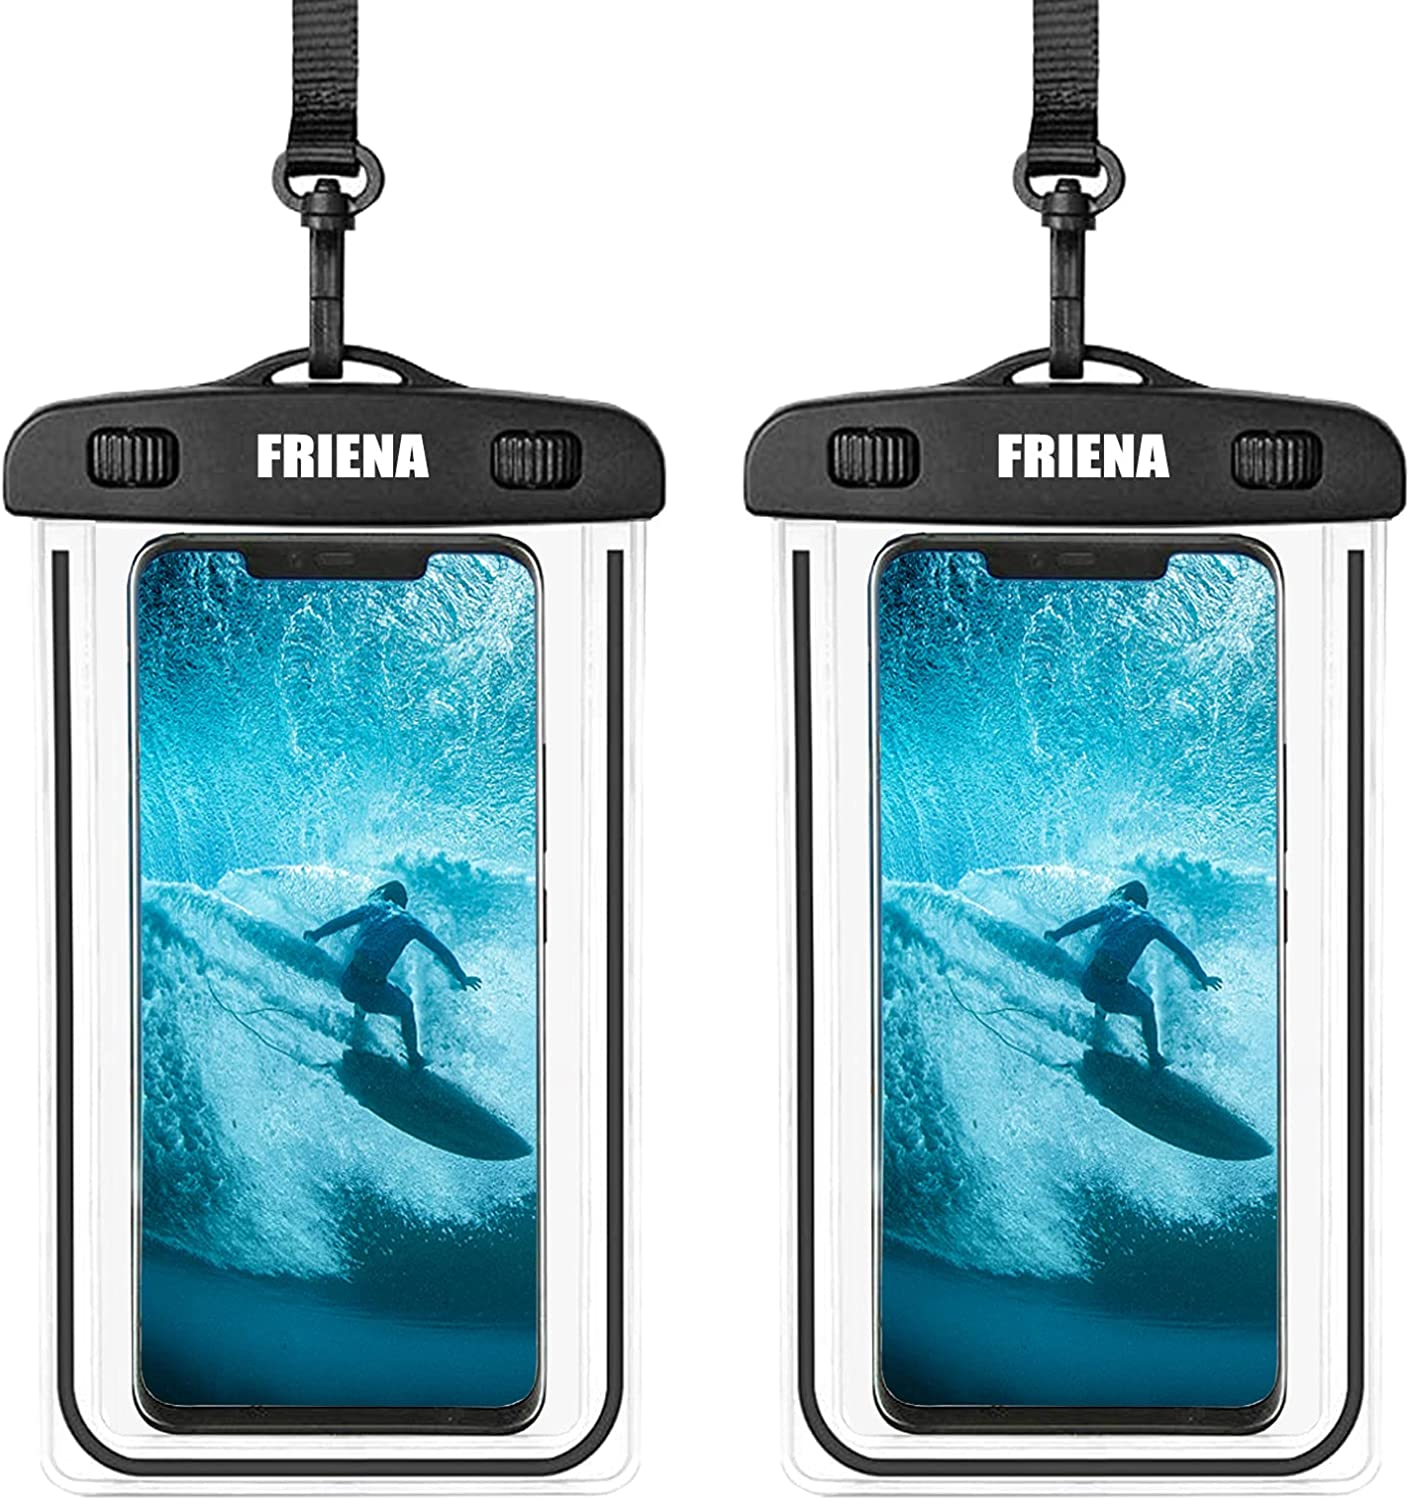 """FRIENA Waterproof Phone Pouch Universal IPX8 Waterproof Phone Case Cellphone Dry Bags Compatible for iPhone 12 Pro 11 Pro Max XS Max XR X 8 7 Samsung Galaxy s10/s9 Up to 6.9"""" (Black)"""